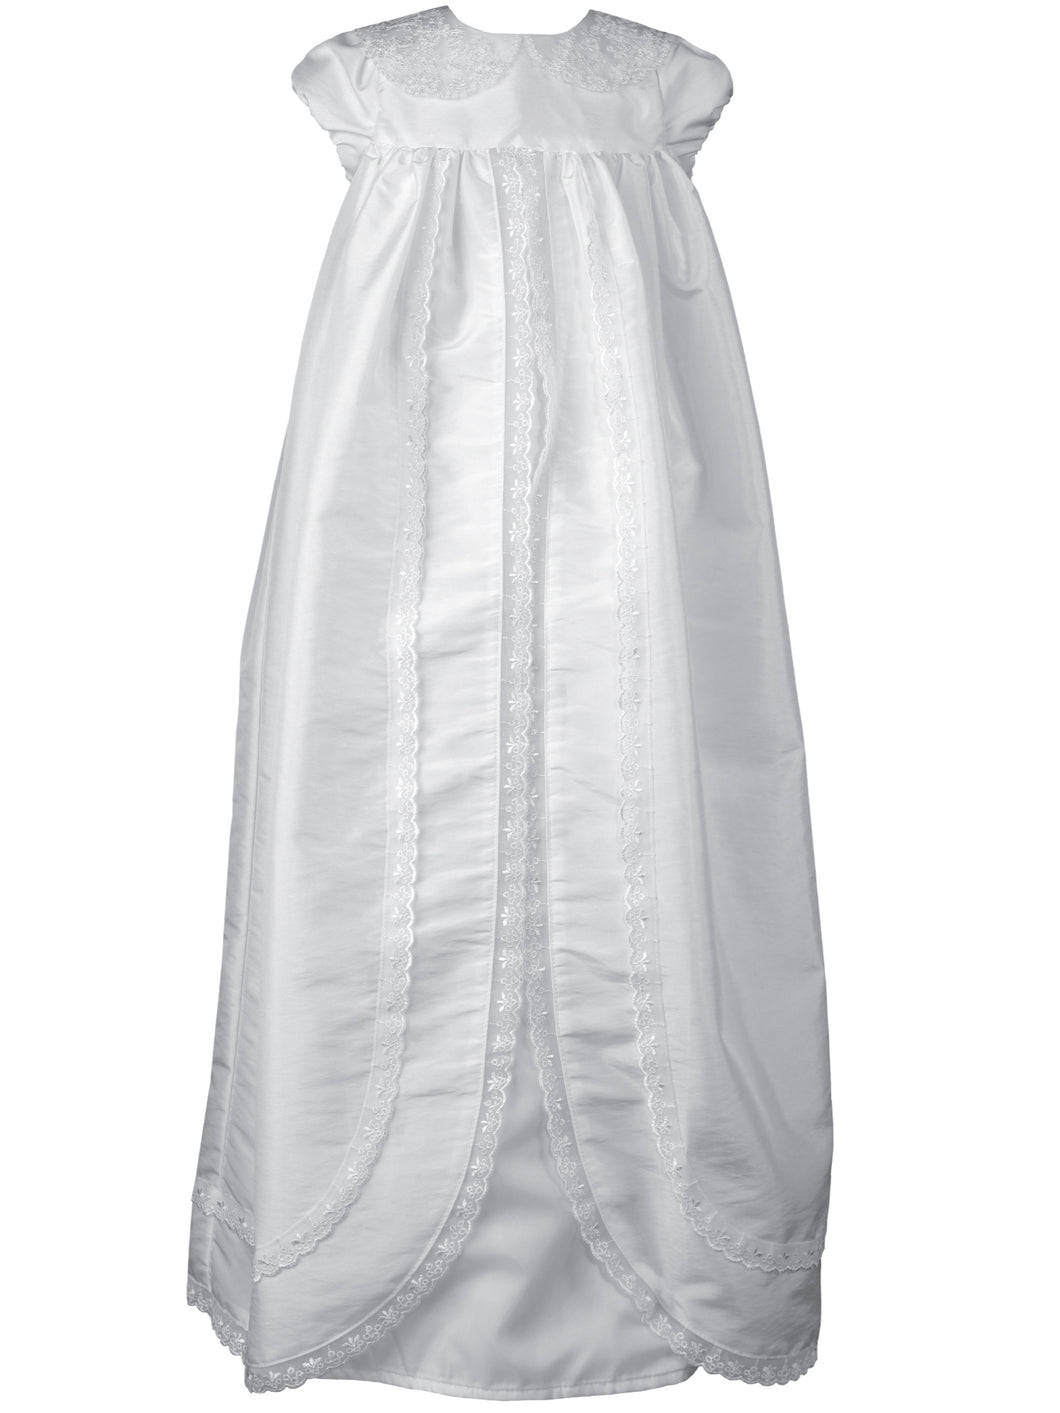 Ariana White - Unisex Traditional Long Christening Robe